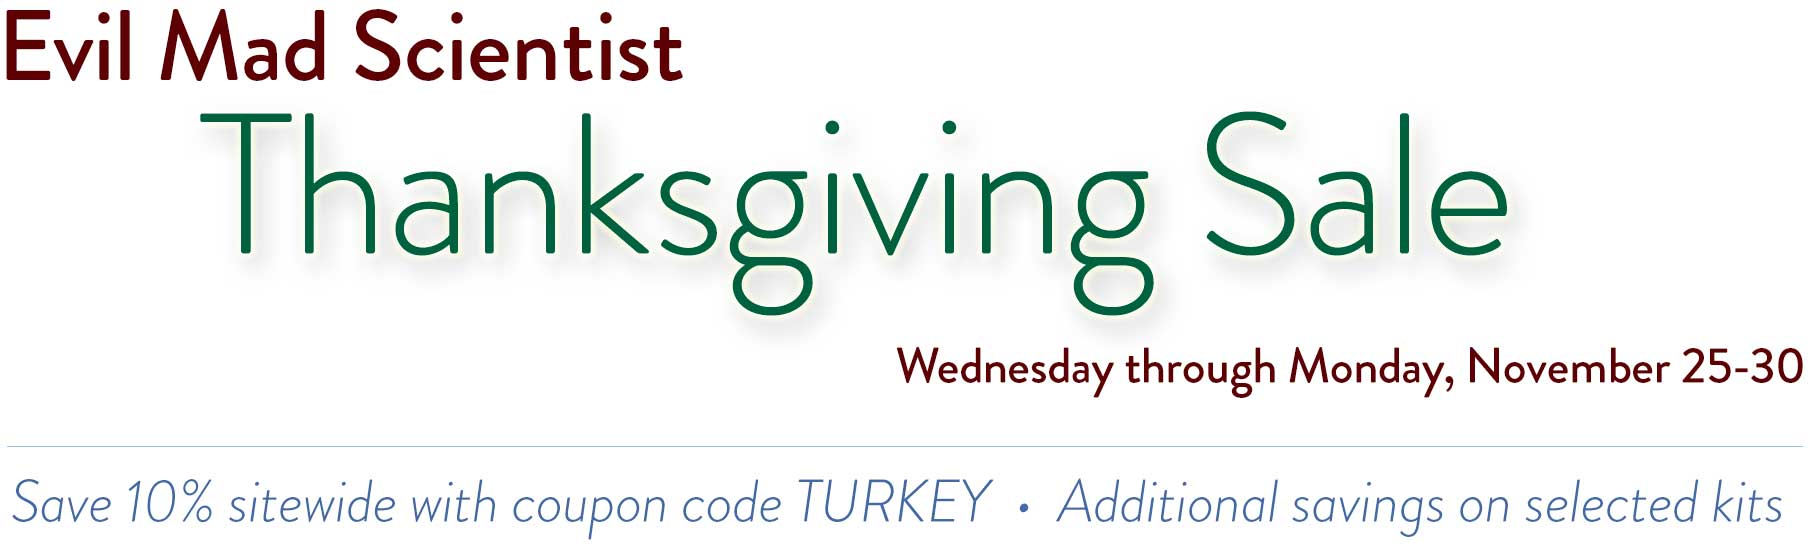 Thanksgiving sale graphic